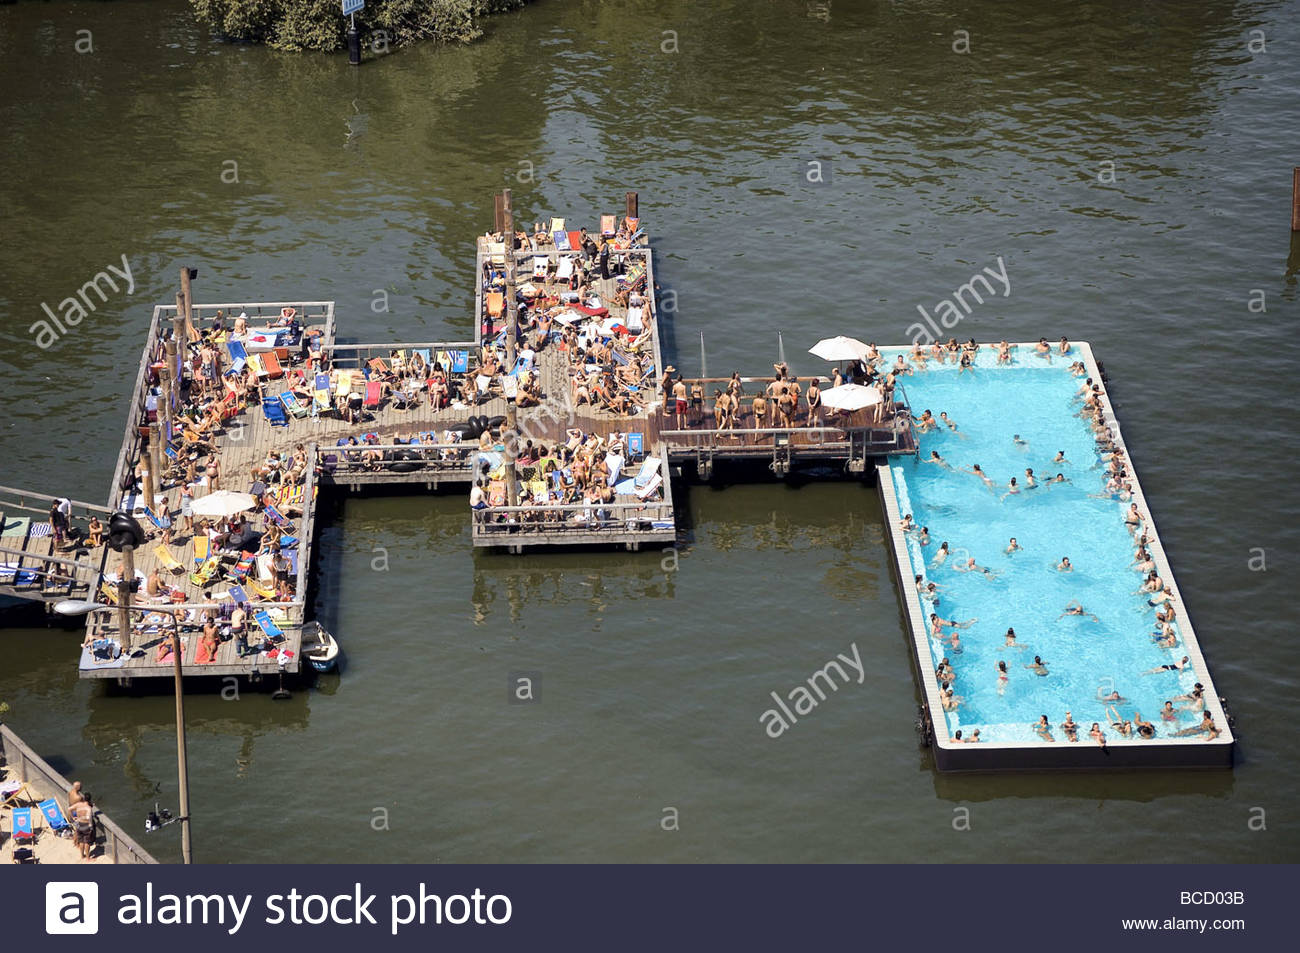 badeschiff bathing ship public swimming pool river spree stock photo 24871711 alamy. Black Bedroom Furniture Sets. Home Design Ideas